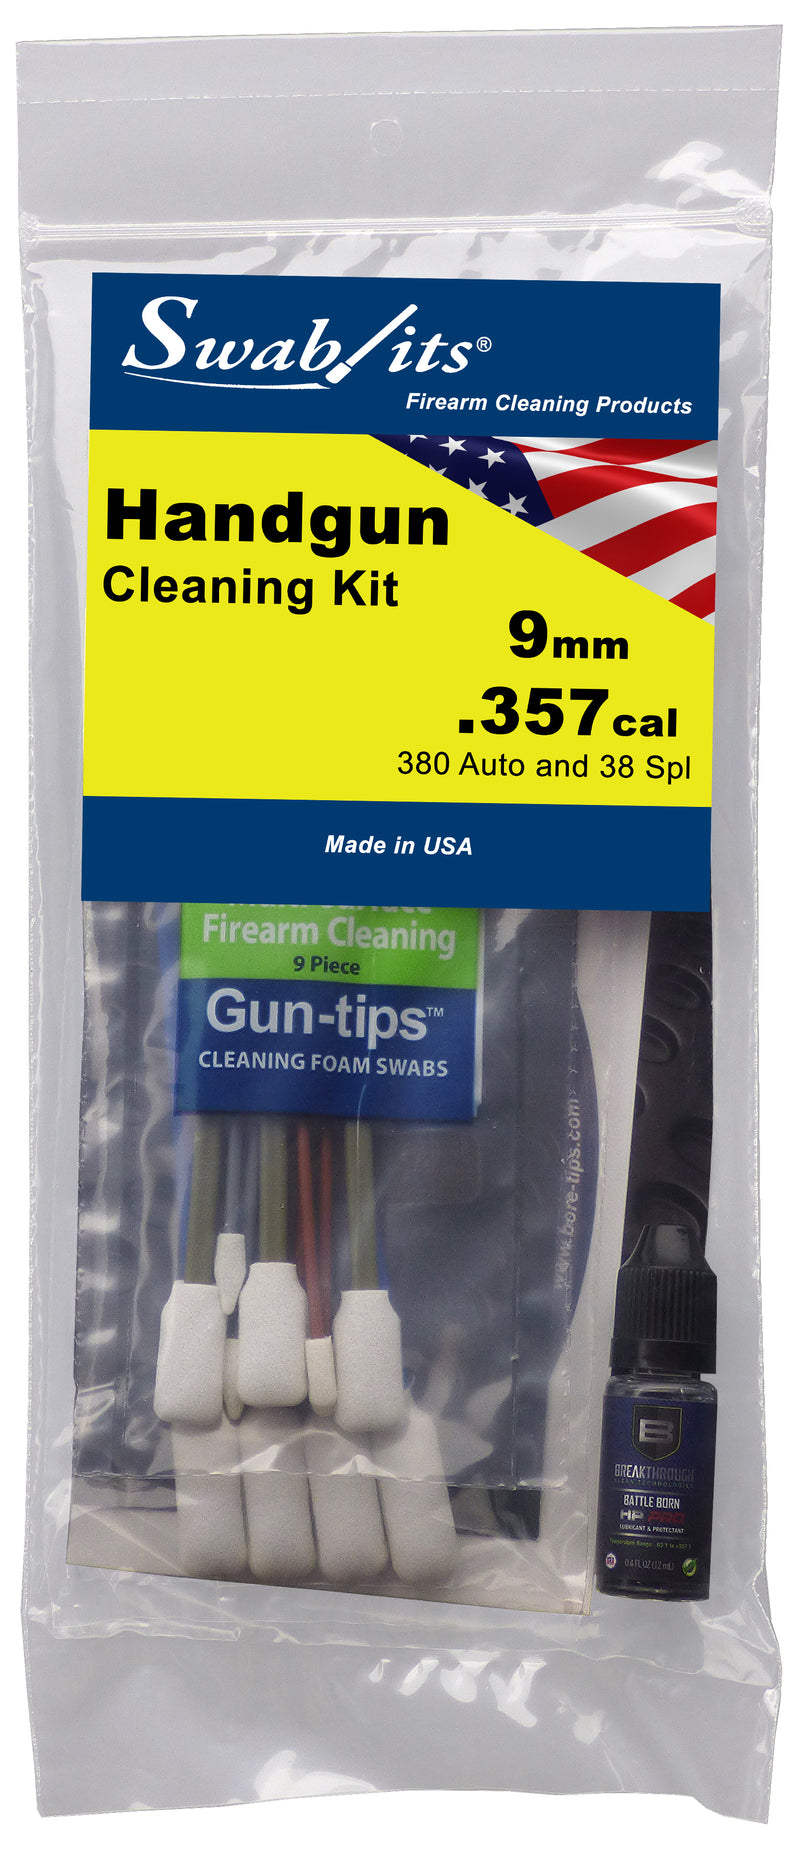 Swab-its® 9mm/.357cal/38spl/380auto Handgun Cleaning Kit: 44-002